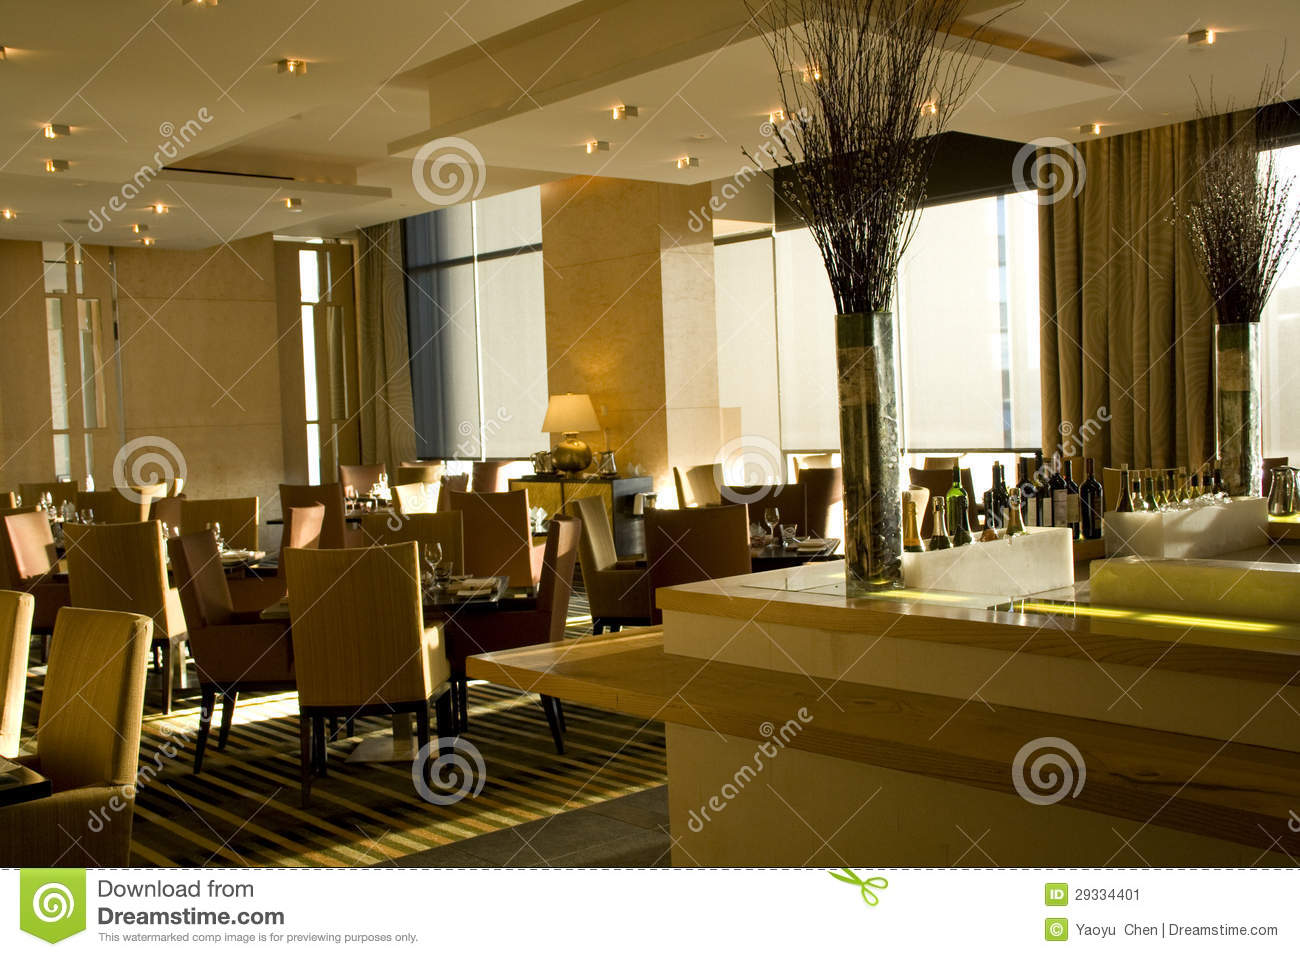 Luxury bar restaurant interiors stock image image 29334401 for Interiores de restaurantes